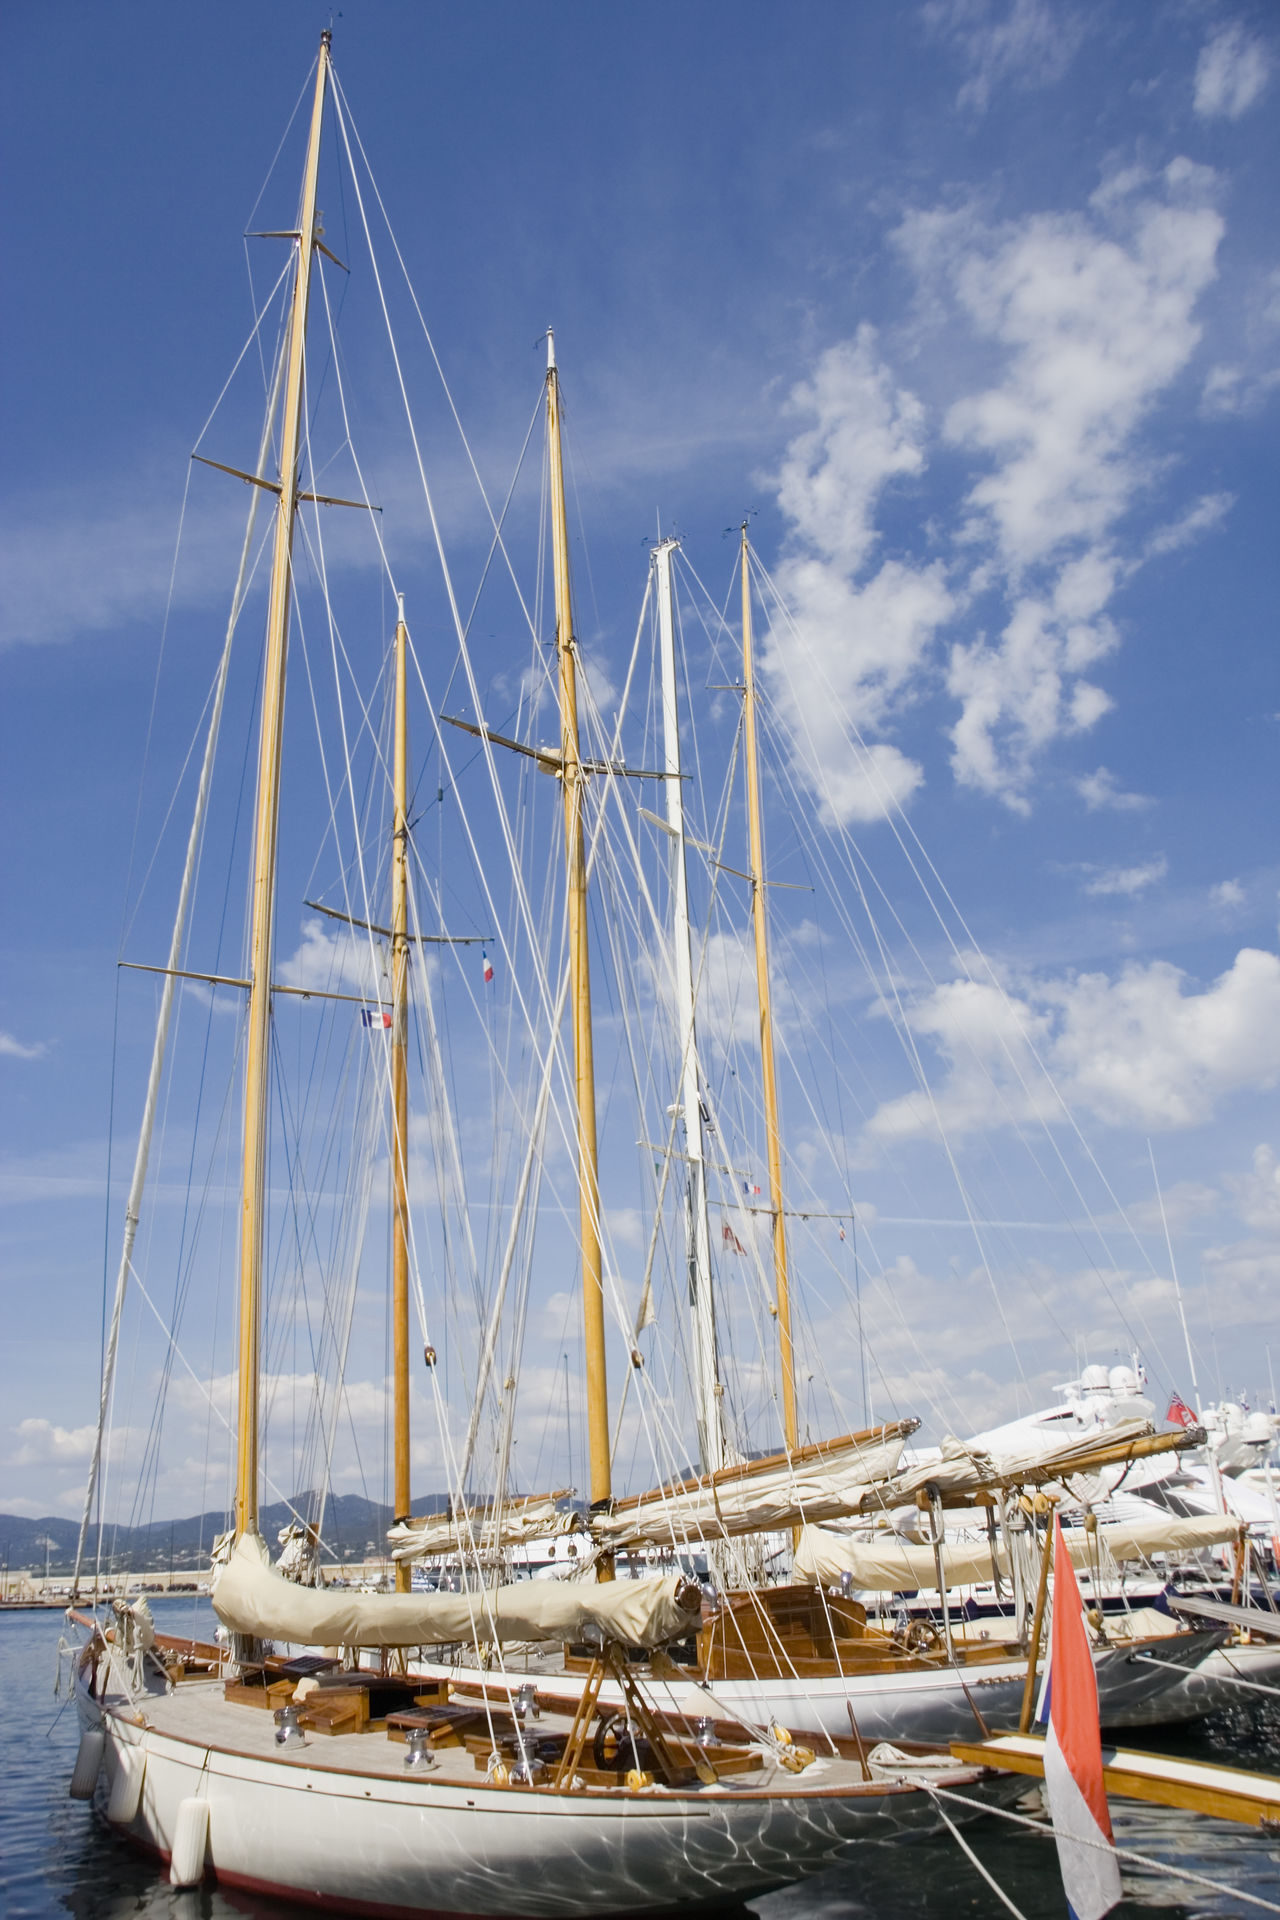 sailing yachts in the port of saint-tropez - french riviera, mediterranean sea Cruise Côte D'Azur Dockside France Harbor In A Row Mast Mediterranean Sea Mode Of Transport Moored Nautical Vessel No People Port Rigging Sailboat Sailing Sailing Boat Sailing Ship Sailing Yacht Saint Tropez Saint-Tropez Sea Transportation Yacht Yachting